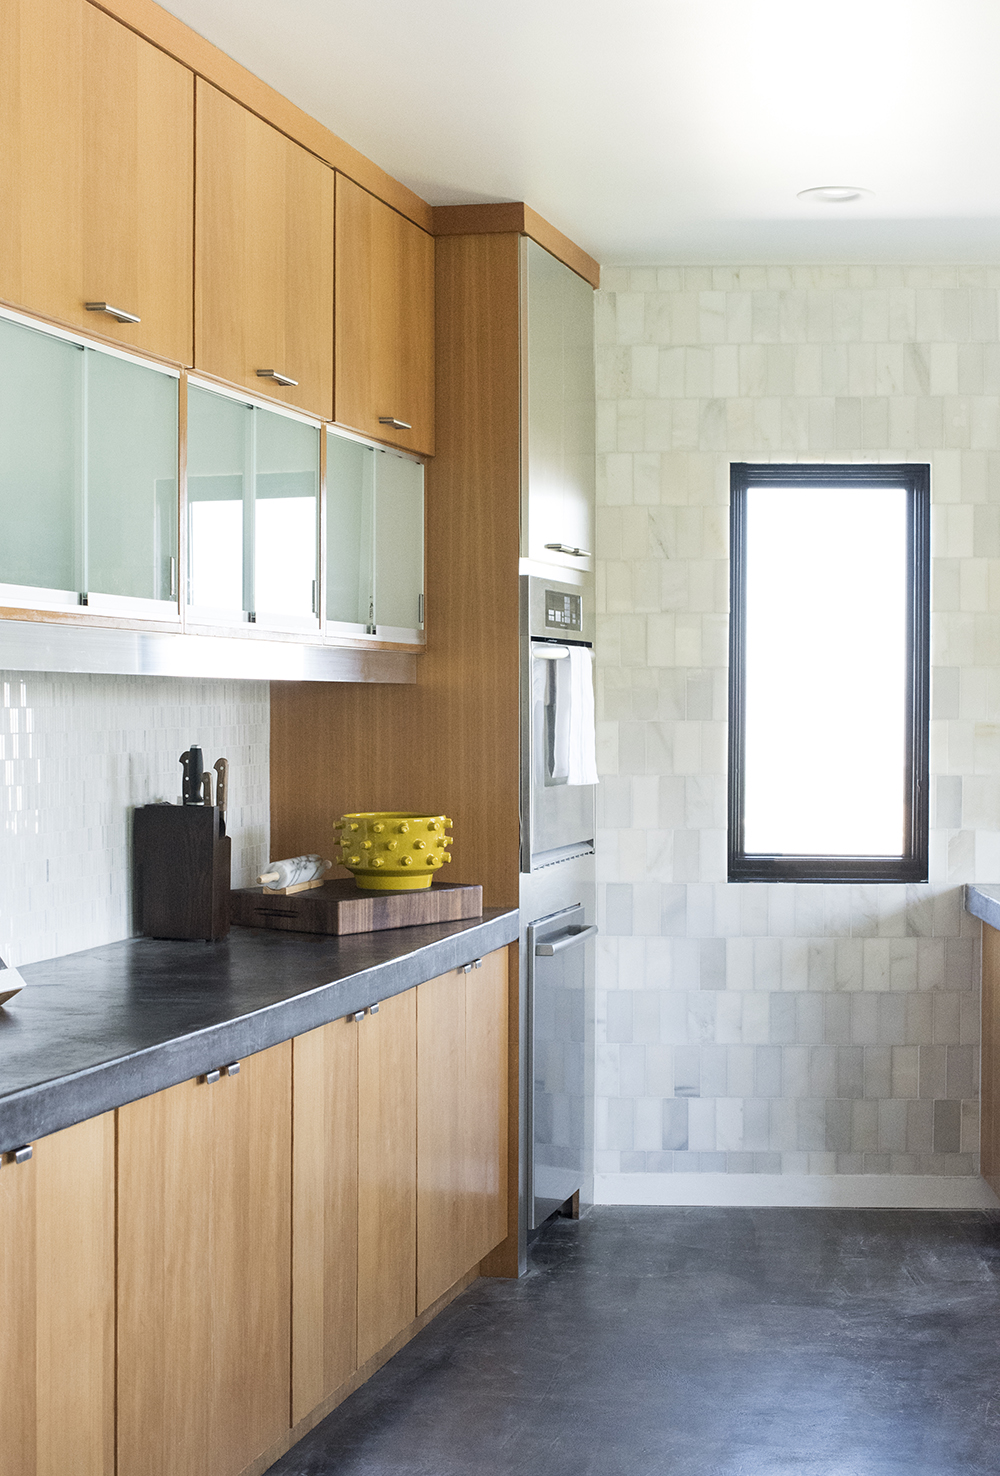 A Modern Kitchen Tour - roomfortuesday.com